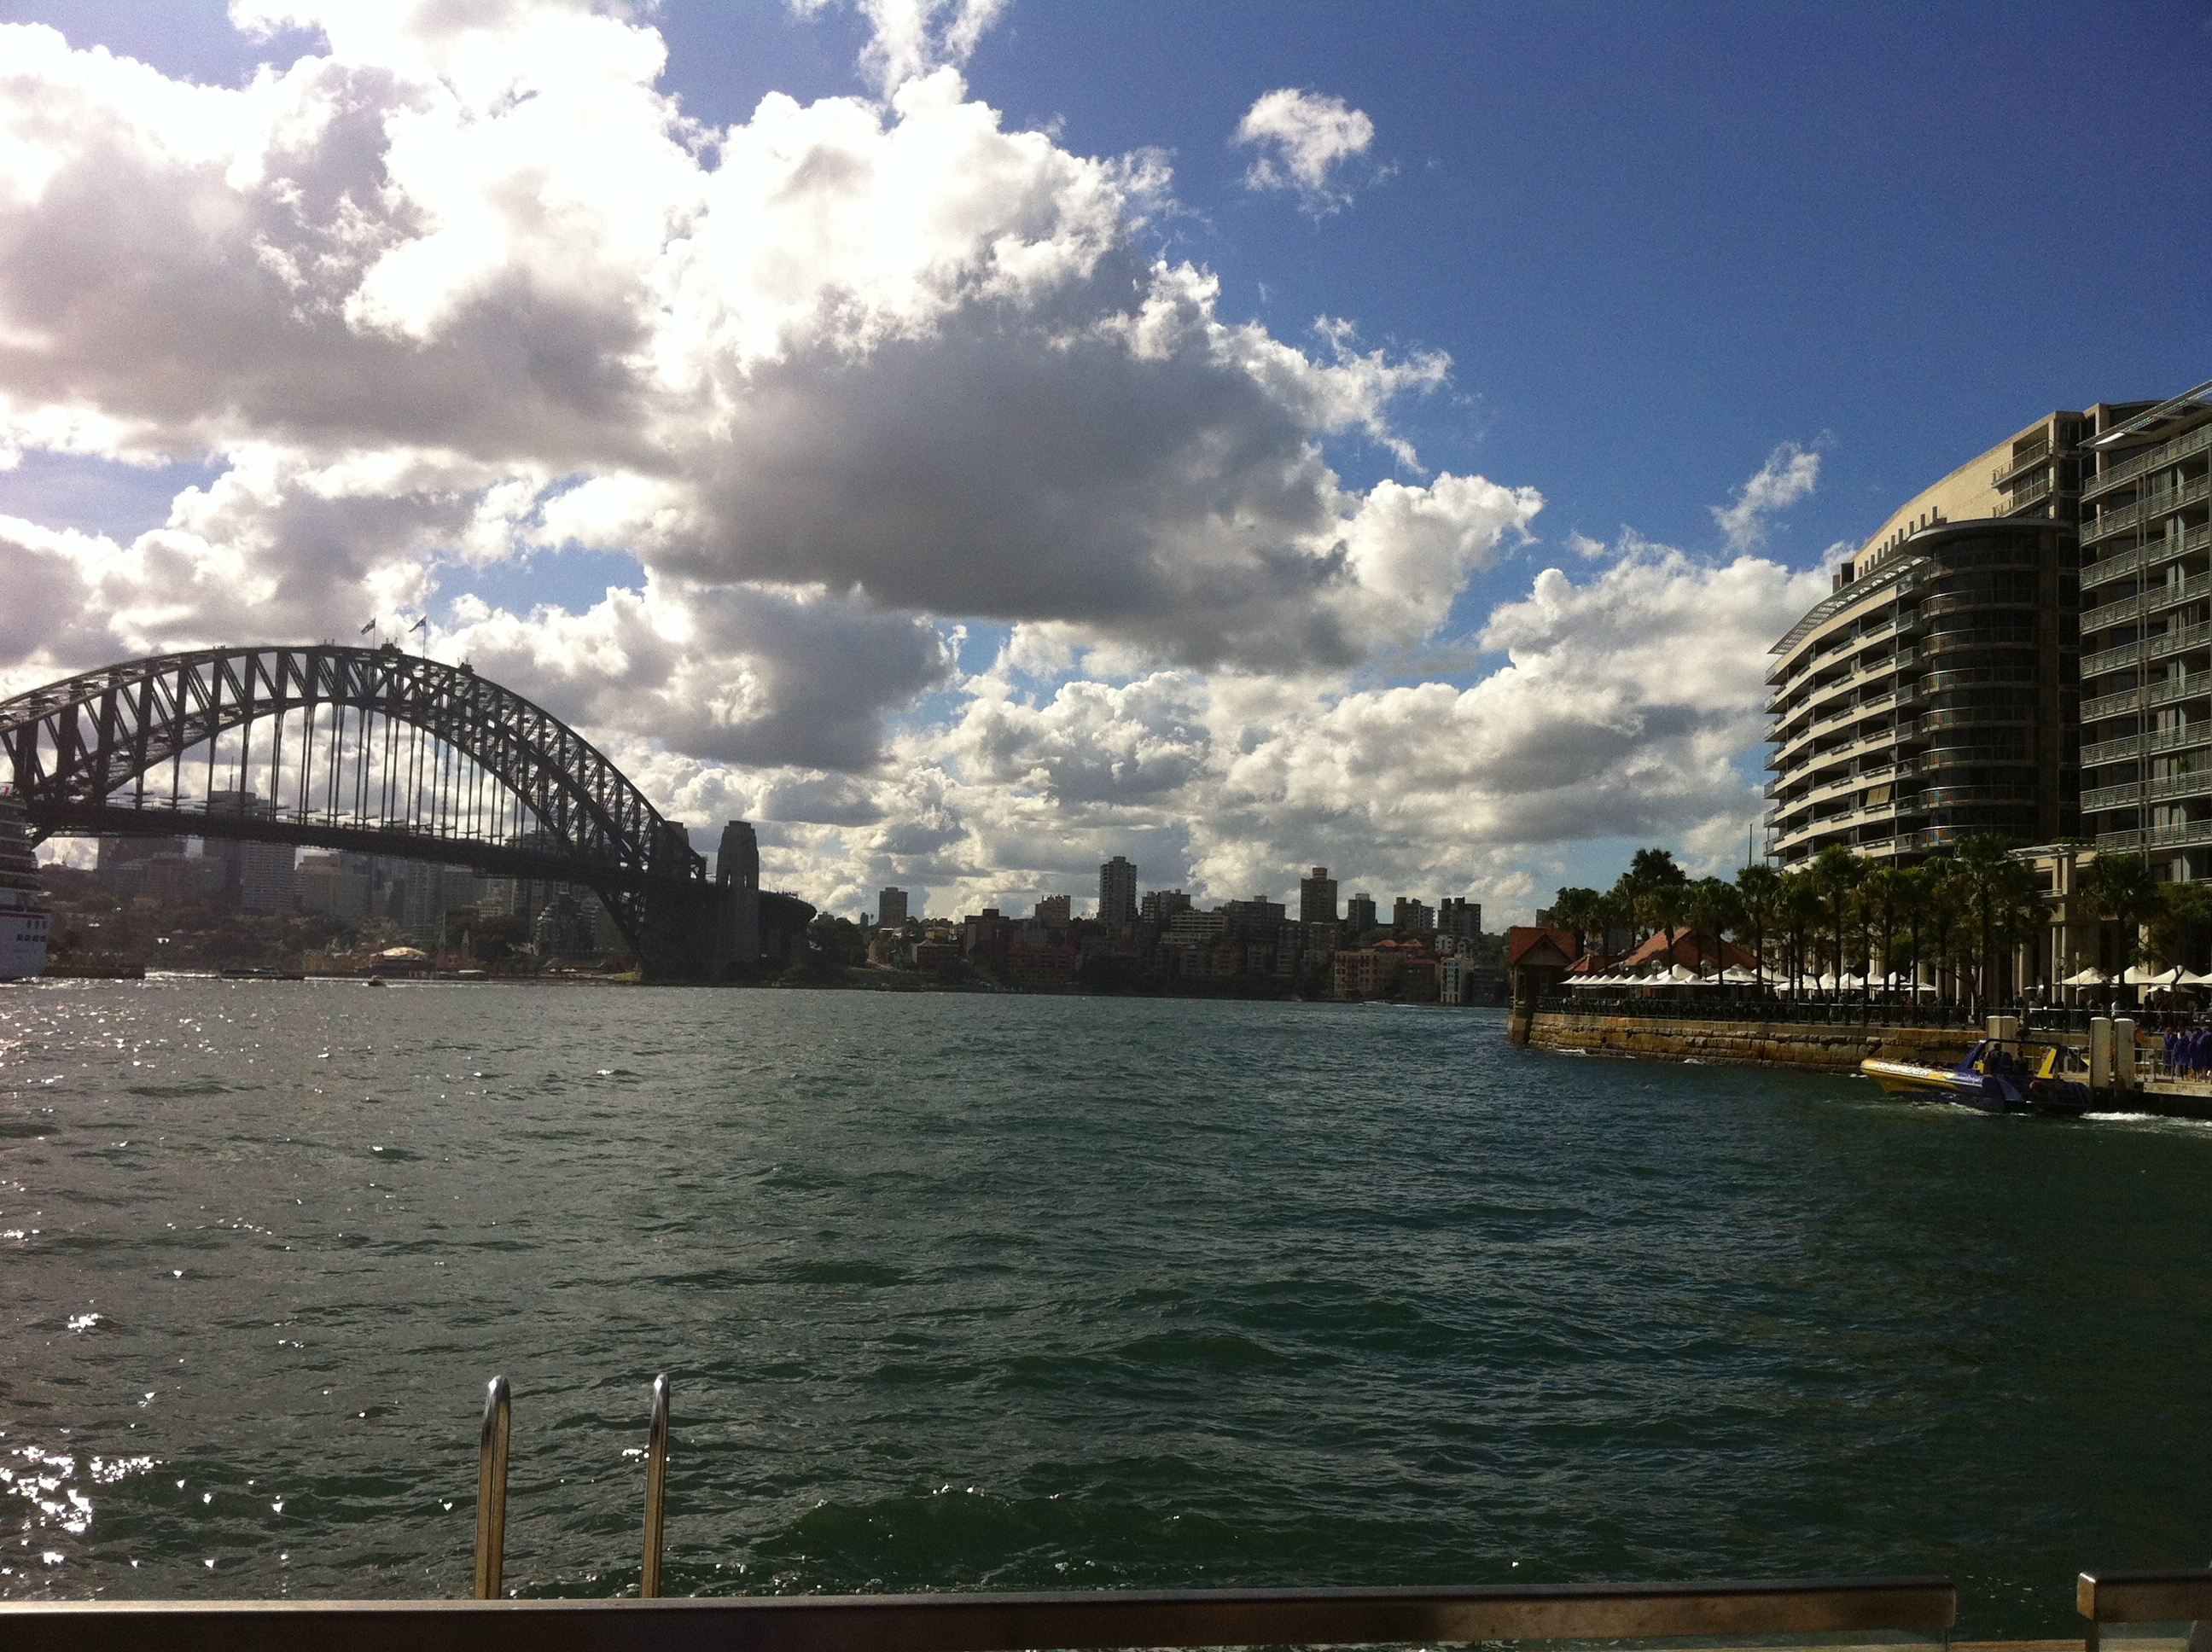 weekend escape sydney - photo#6